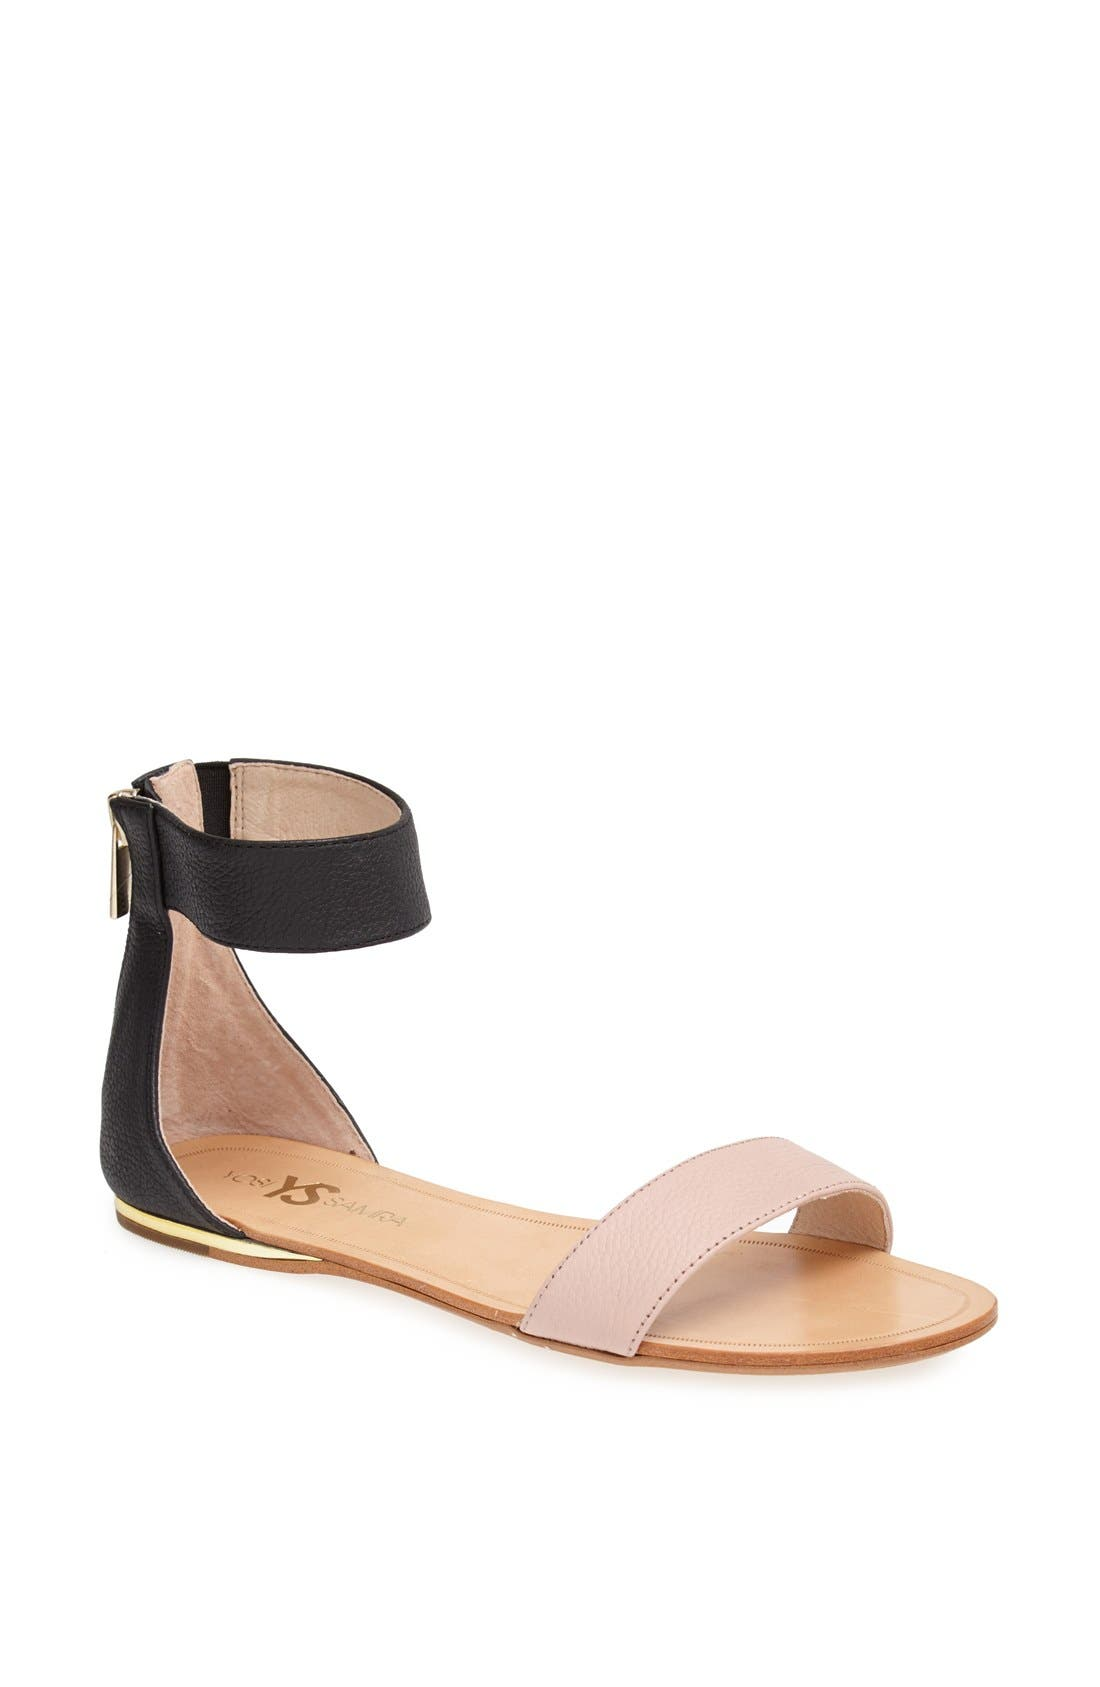 'Cambelle' Ankle Strap Sandal, Main, color, 001